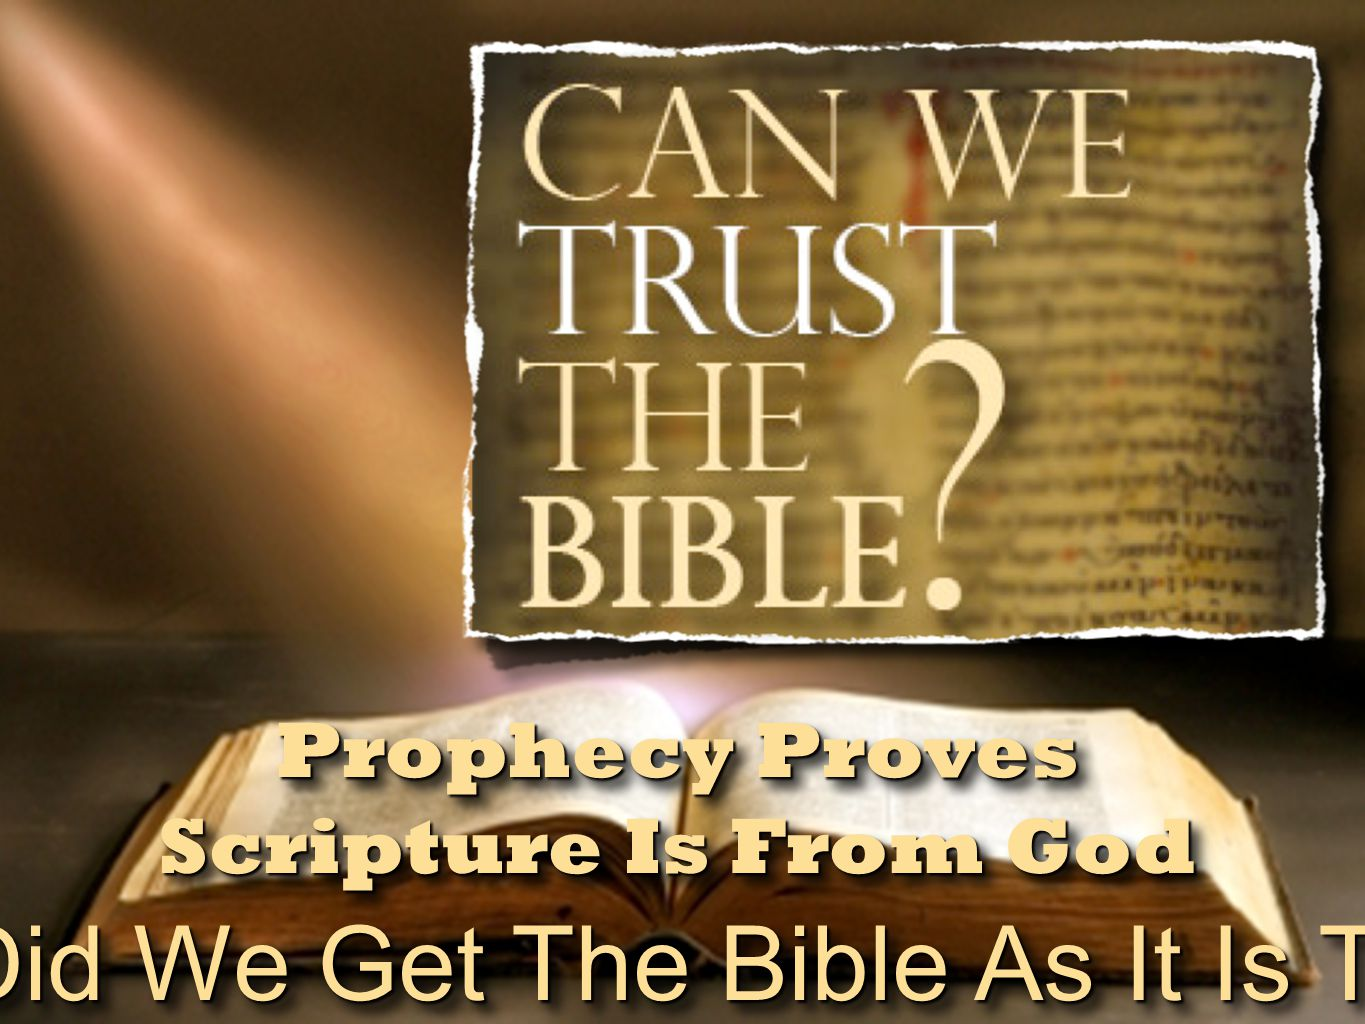 The Trustworthiness of The Scriptures Prophecies Regarding Jesus Fulfilled Prophecy Hebrew Scripture New Testament Fulfillment 30 pcs silver thrown in templeZechariah 11:13Matthew 27:5 Forsaken by His disciplesZechariah 13:7Matthew 26:56 Accused by false witnessesPsalm 35:11Matthew 26:60 Silent to accusationsIsaiah 53:7Matthew 27:14 Heal blind/deaf/lame/dumb Isaiah 35:5-6; 29:18 Matthew 11:5 Preached to the poor/brokenhearted/captives Isaiah 61:1Matthew 11:5 To bring a sword, not peaceMicah 7:6Matthew 10:34-35 He bore our sicknessIsaiah 53:4Matthew 8:16-17